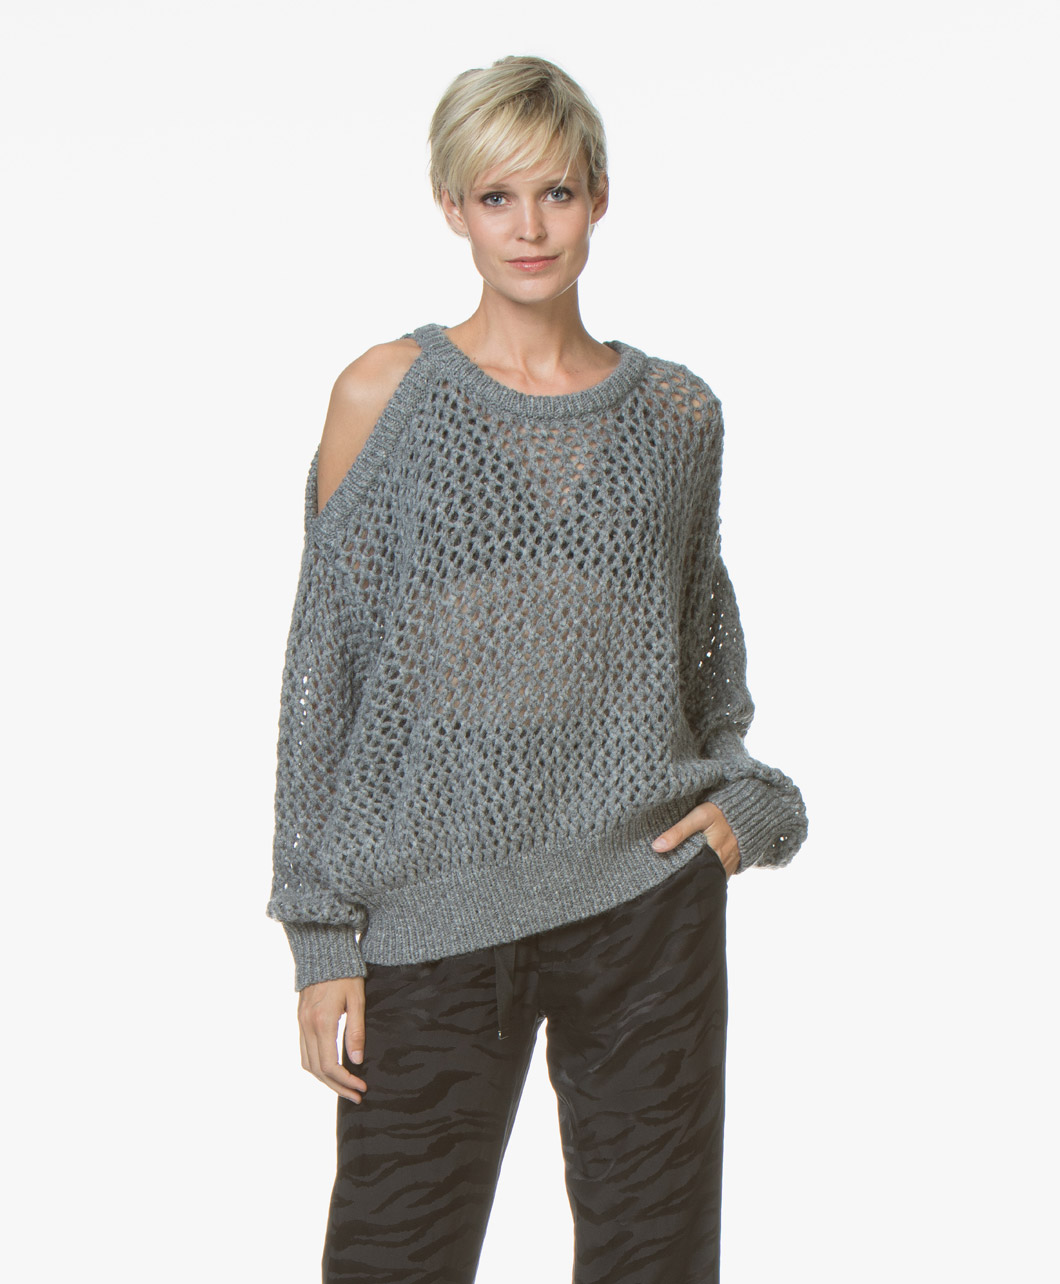 Pullover Mixed Shoulder 18wwp12breath Breath Gry08 Cold Grey Iro qOwUC44